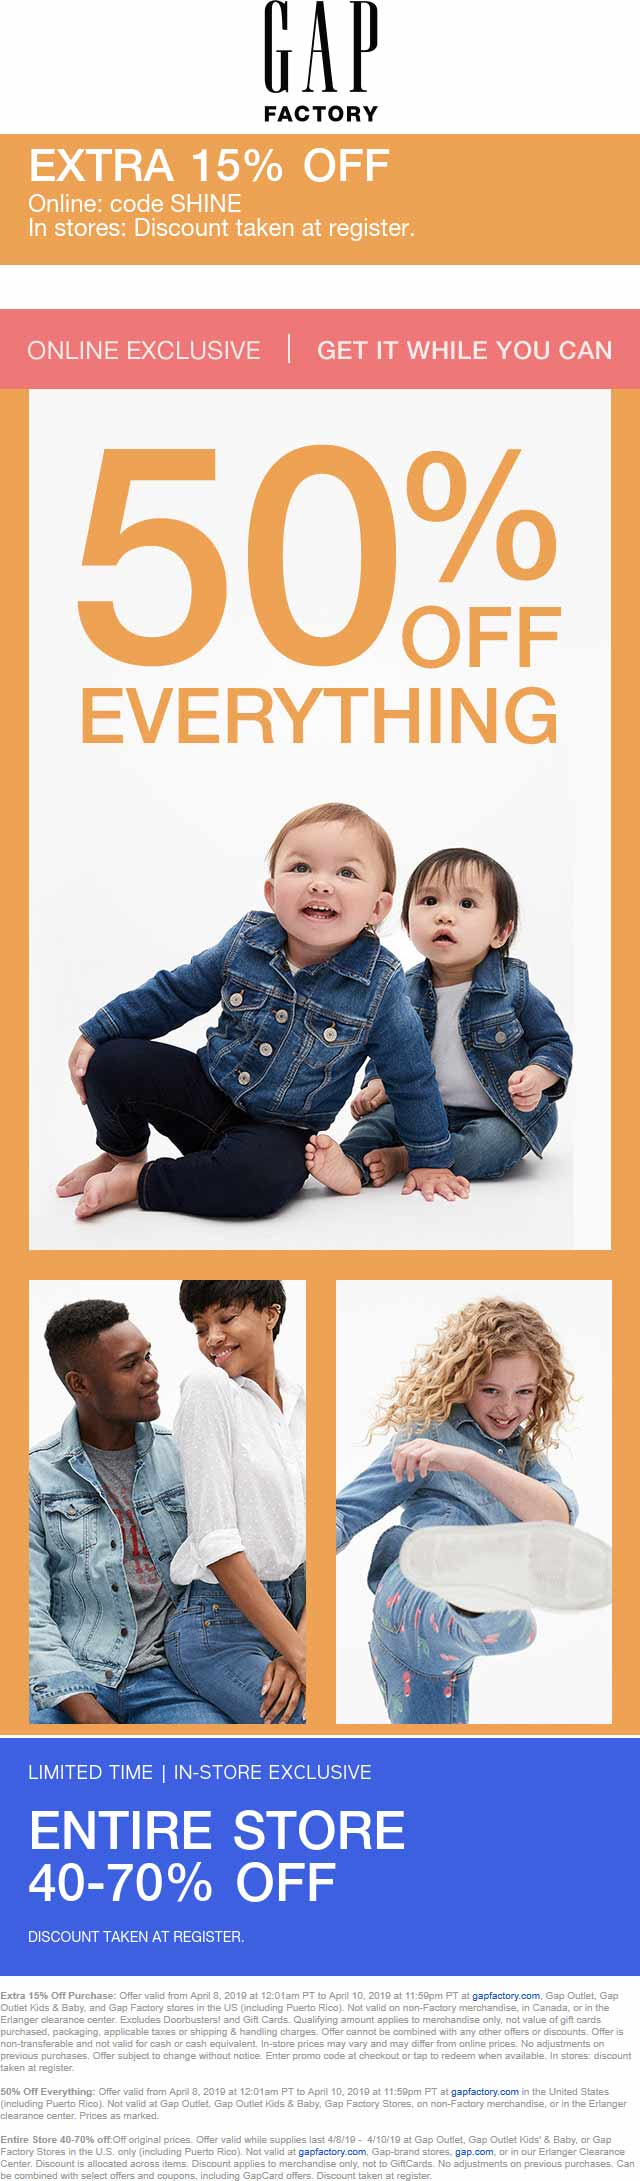 Gap Factory Coupon July 2019 50-70% off everything at Gap Factory, or online via promo code SHINE